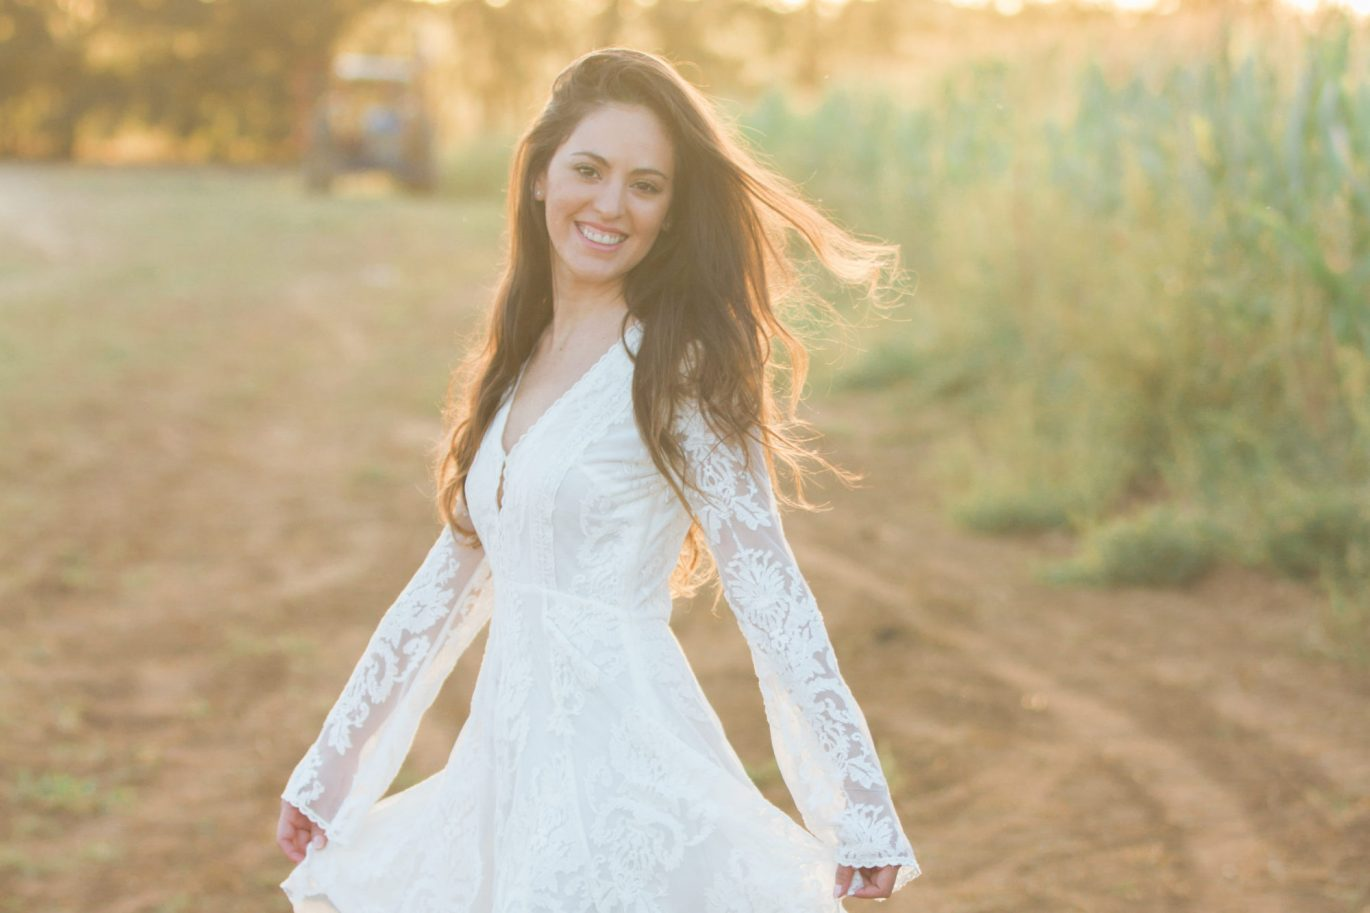 sundress in the fall, how to wear summer clothes in the fall, backlight, cornfield, fall outfit ideas